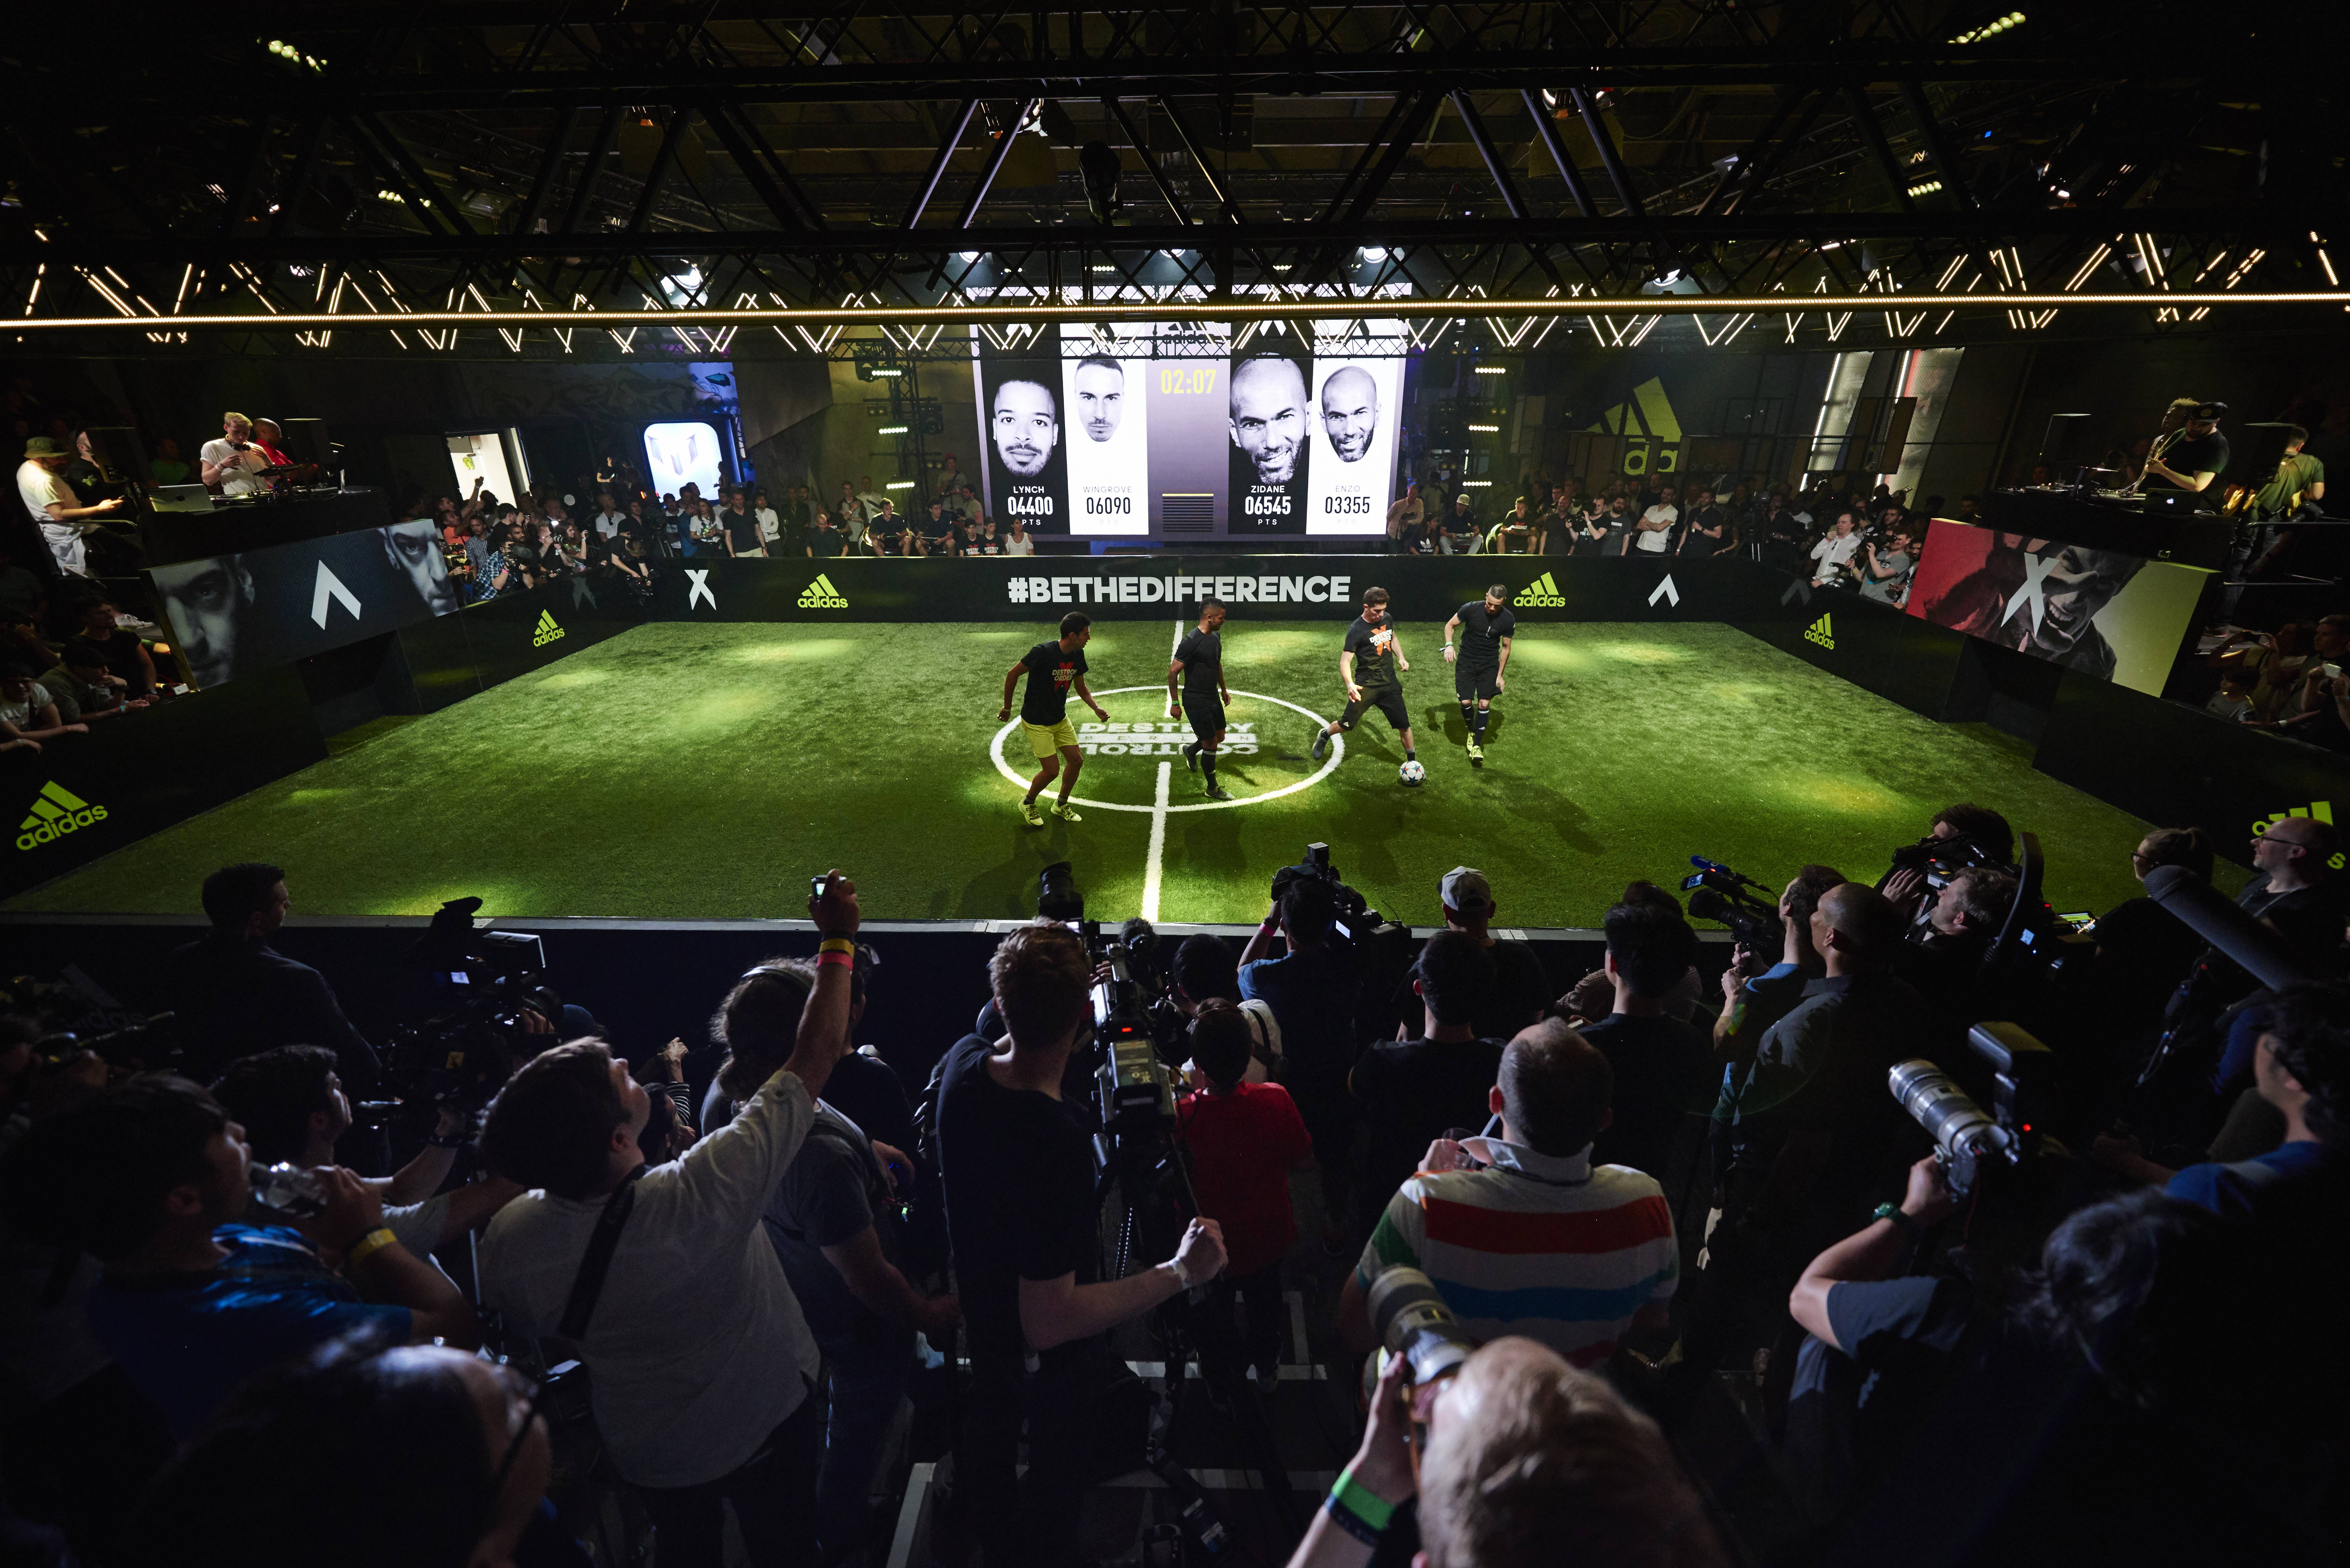 Europes Biggest Clubs Join adidas For BETHEDIFFERENCE World Final